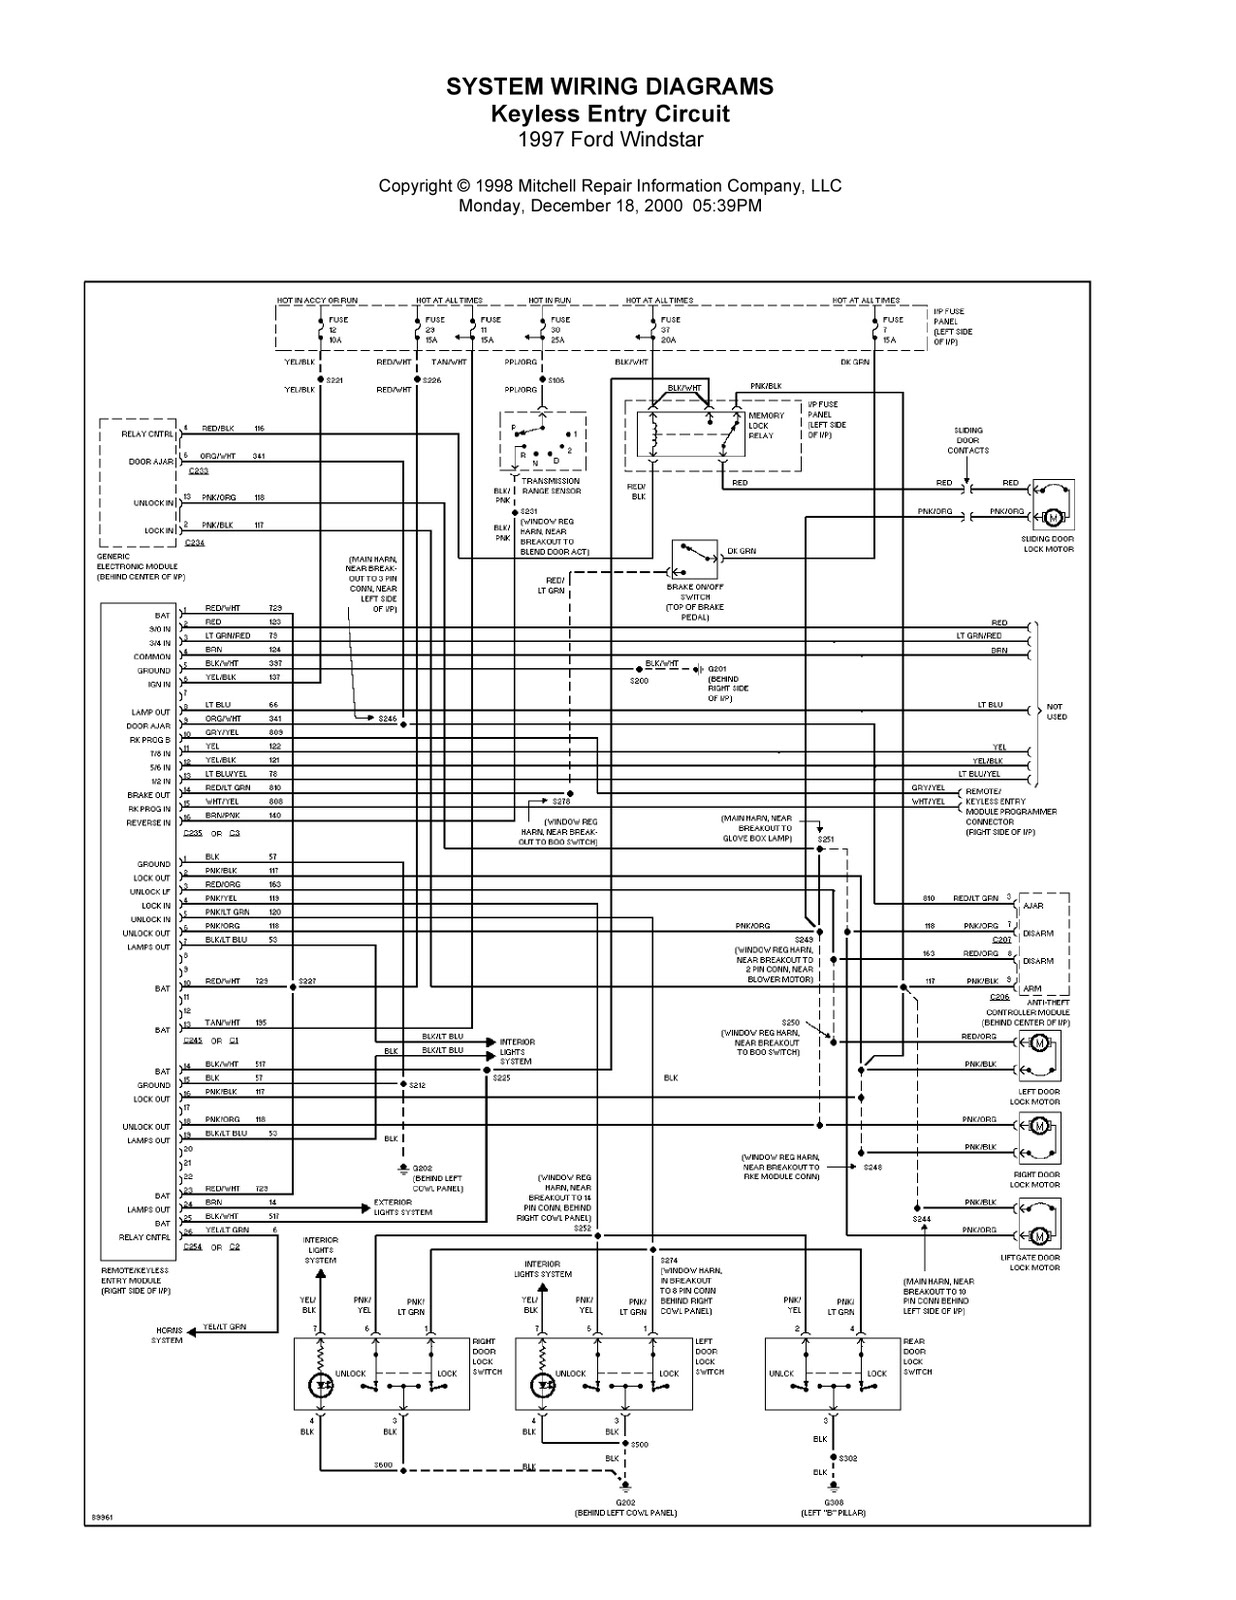 2000 ford windstar engine diagram cell organelles 1997 great installation of wiring complete system diagrams 1999